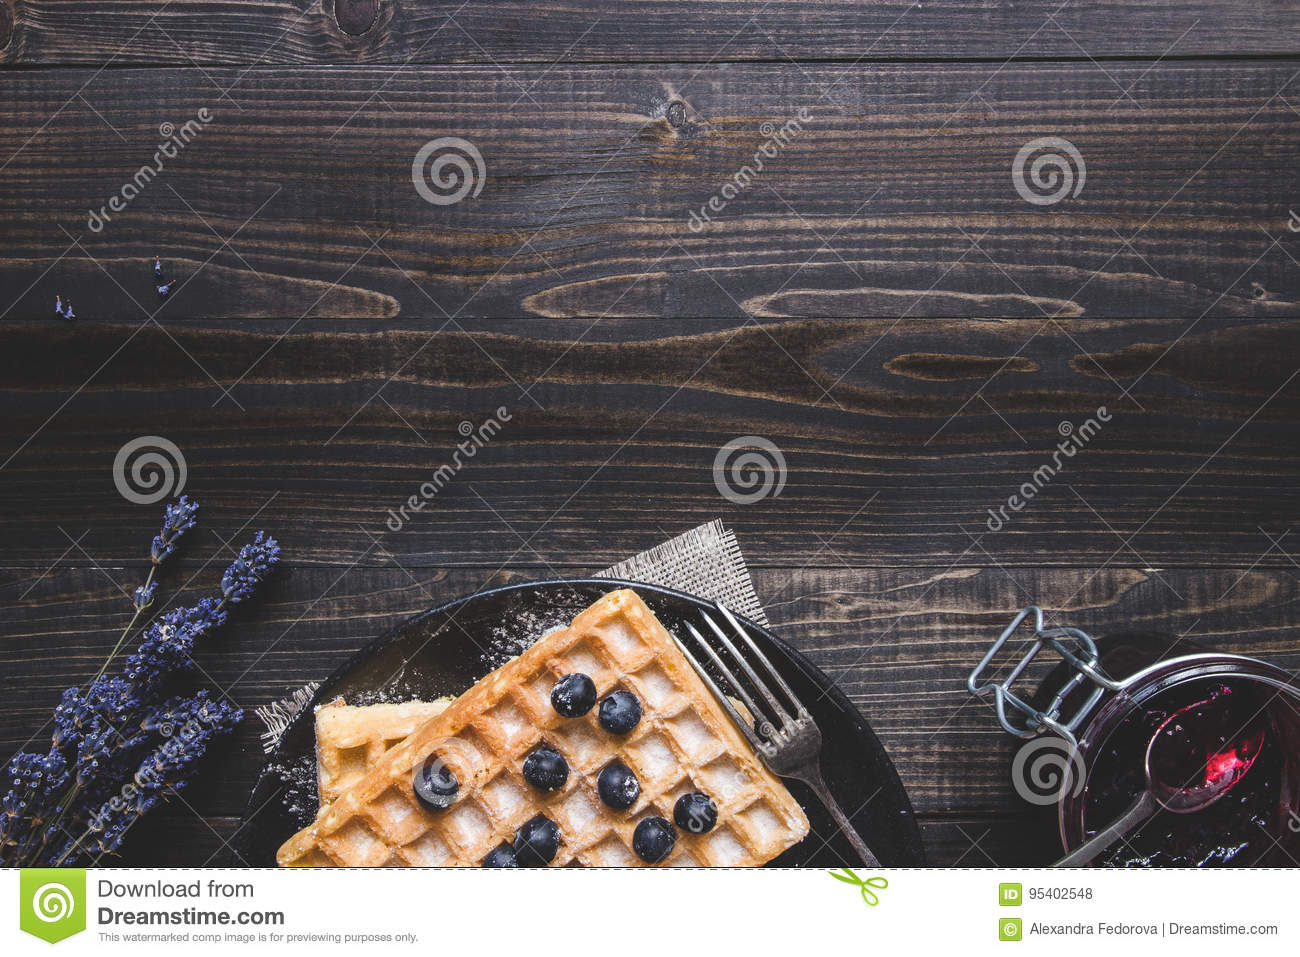 Homemade belgian waffles with blueberries on the dark wooden table with copy space